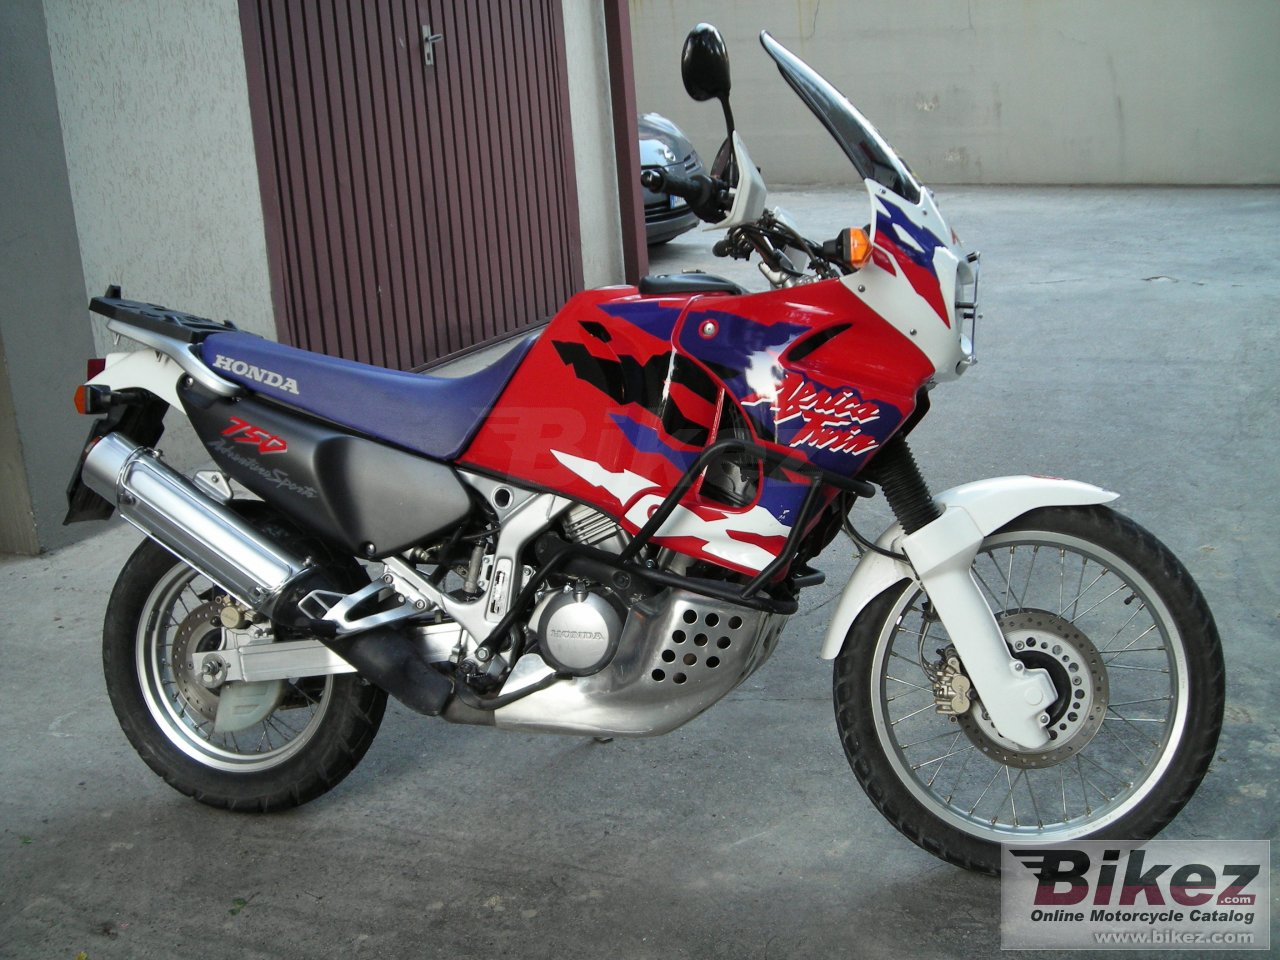 Big  xrv 750 africa twin picture and wallpaper from Bikez.com